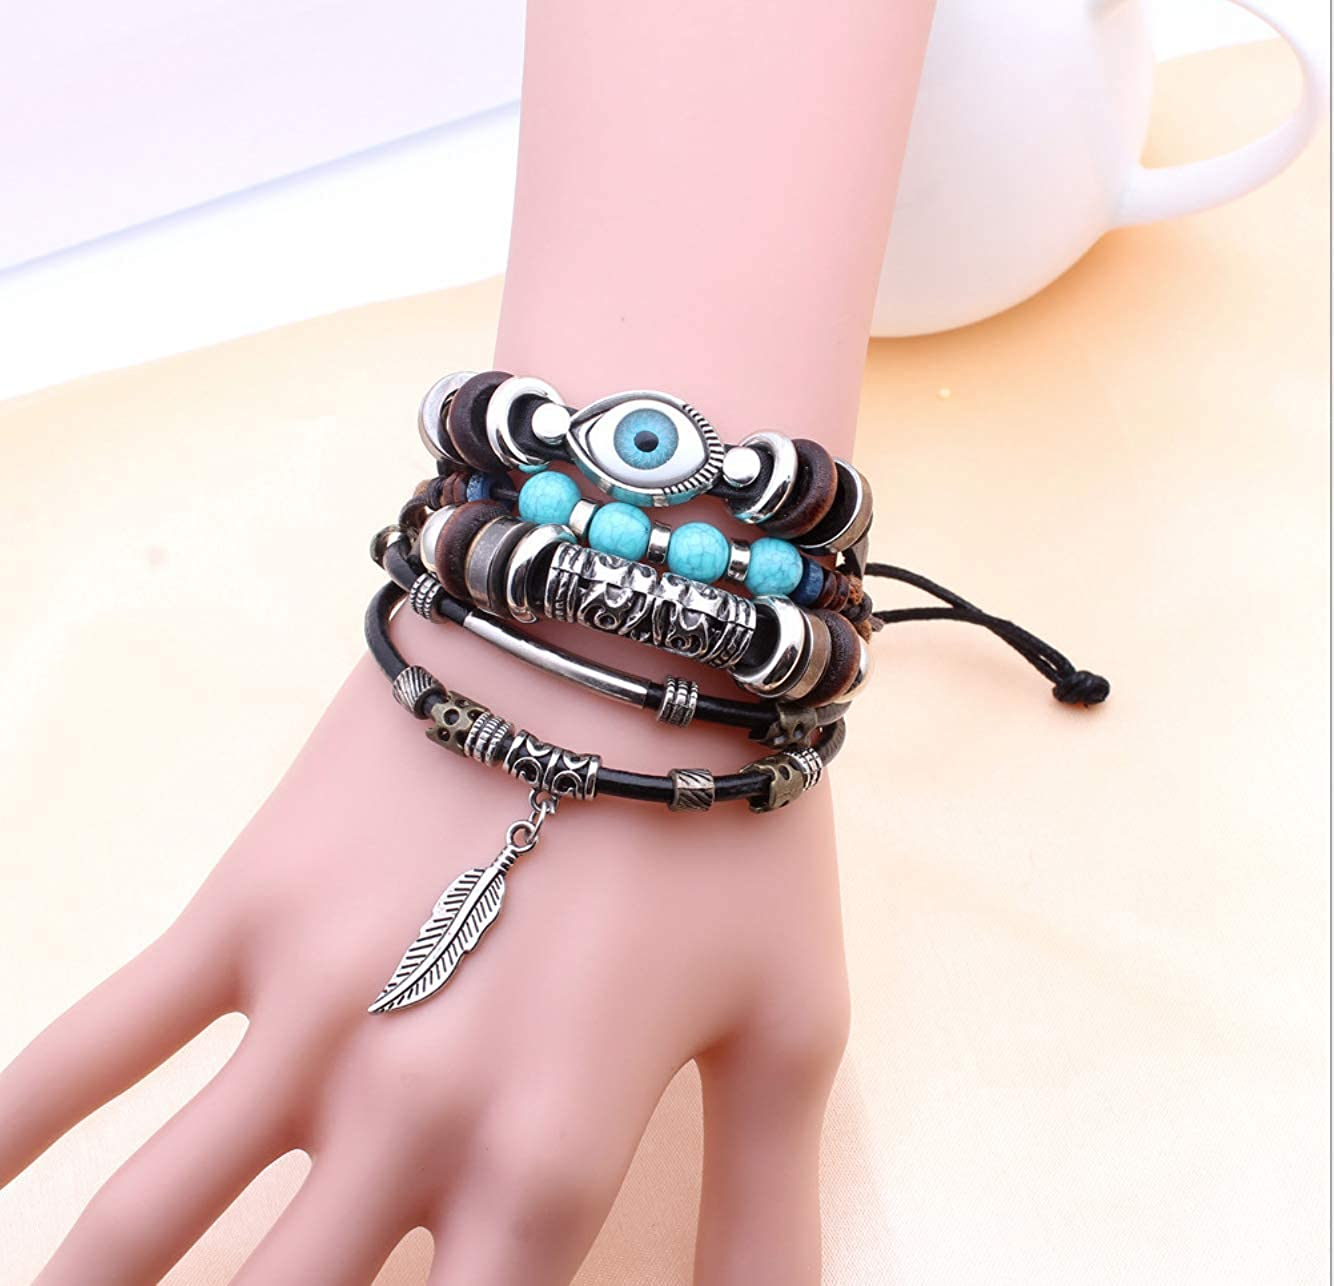 Kiki Leather Wrap Bracelet Handmade Adjustable Wristband for Men or Women Multilayer Cuff Accessory with snap Clasp